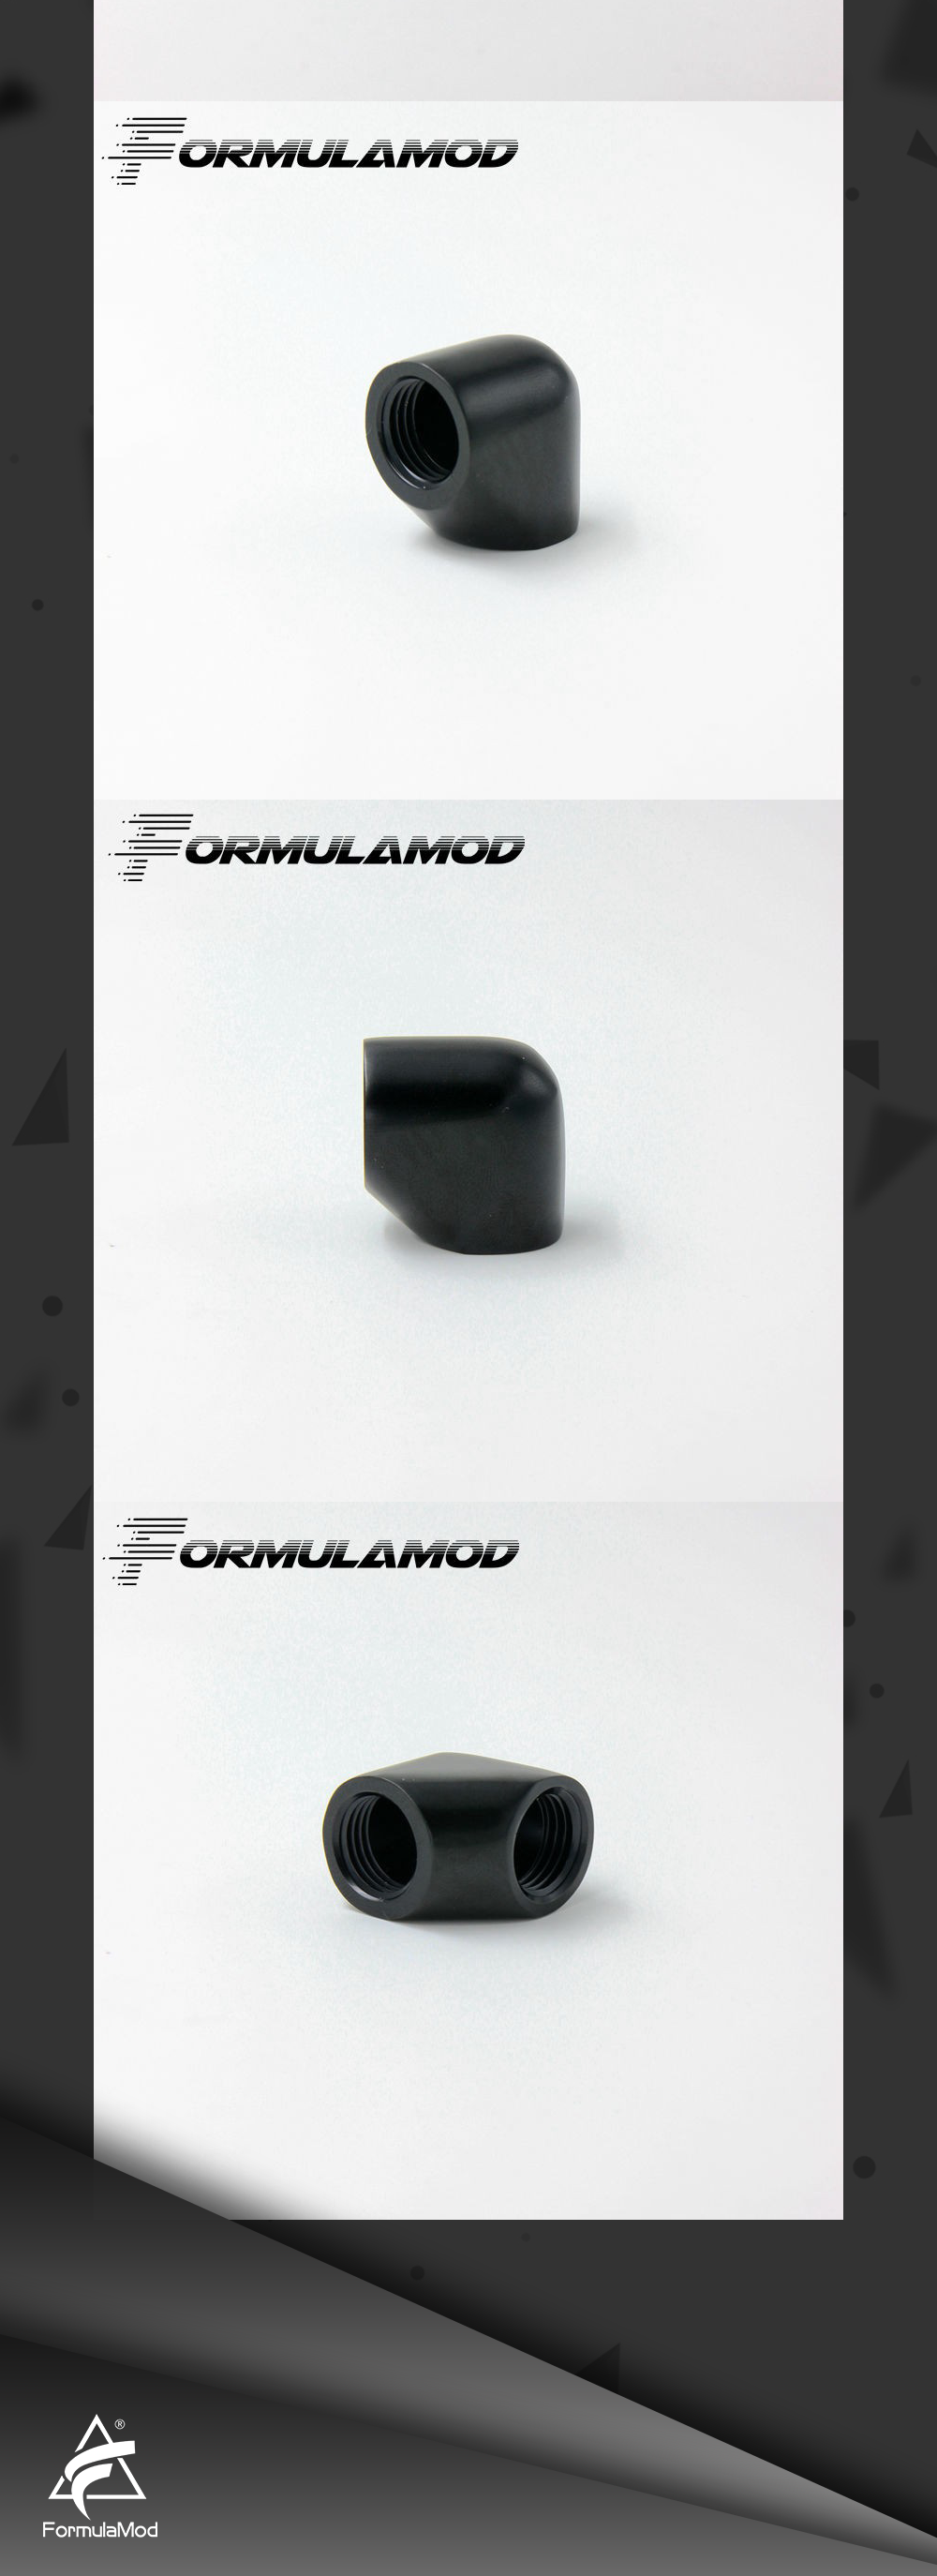 FormulaMod Fm-D90 Black/Silvery double internal G1/4'' thread 90 degree Fitting Adapter water cooling Adaptors